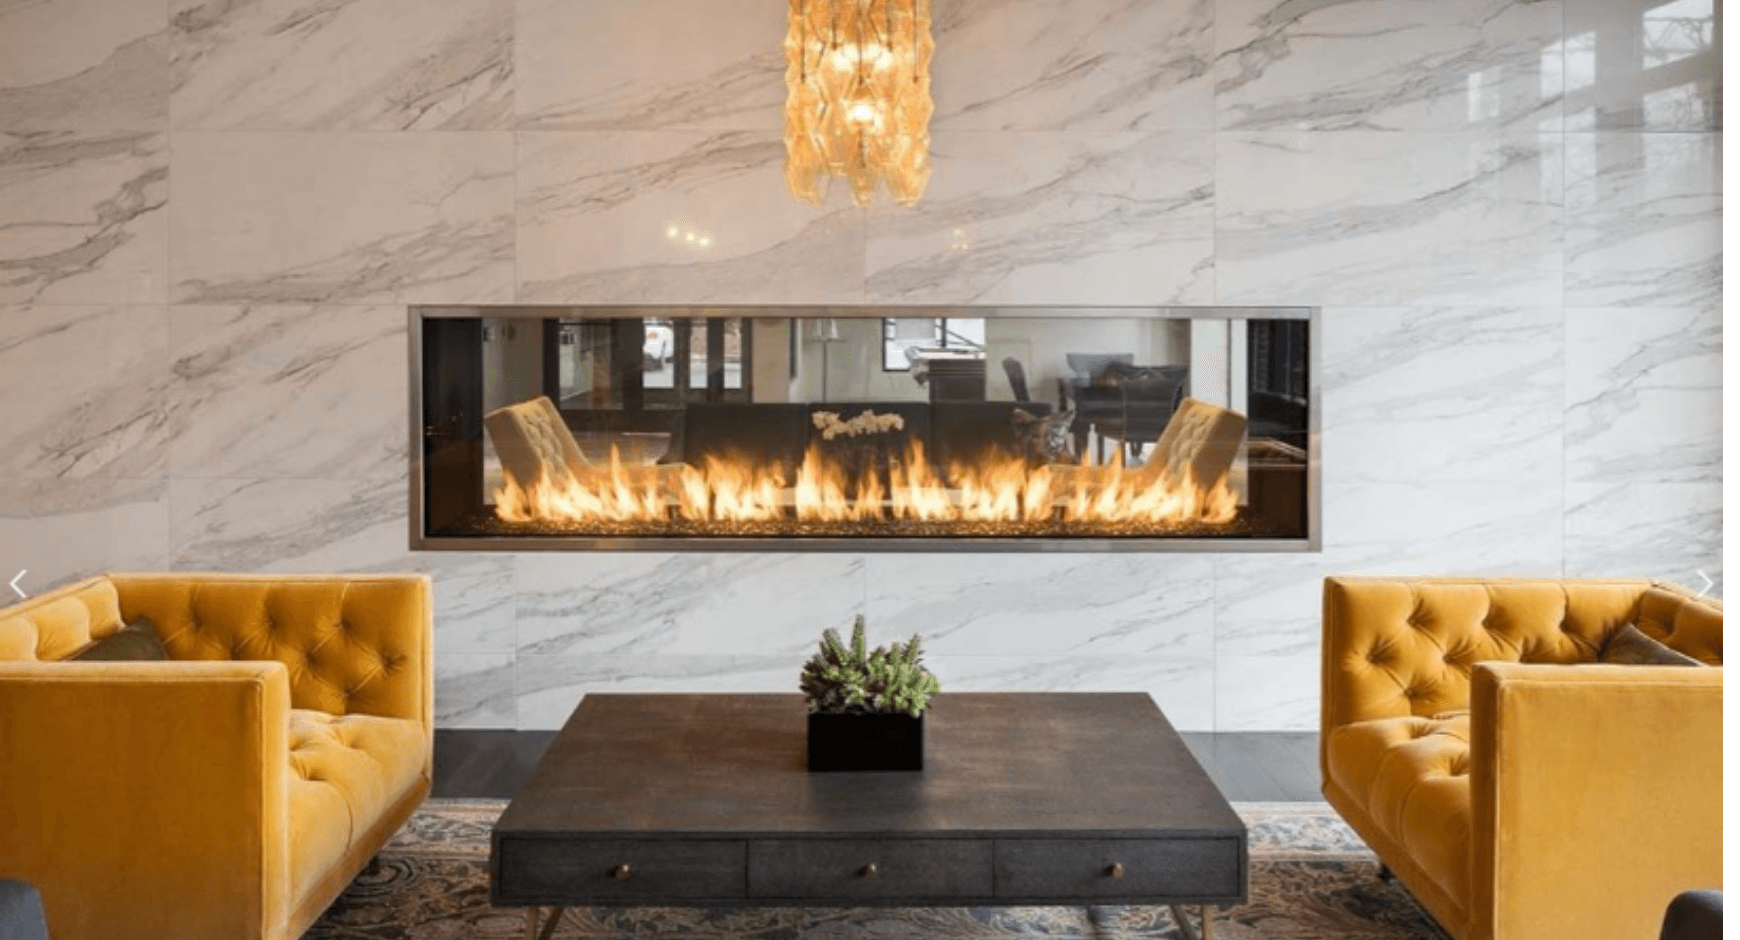 hotel interior design trends that favor colors and textures over patterns